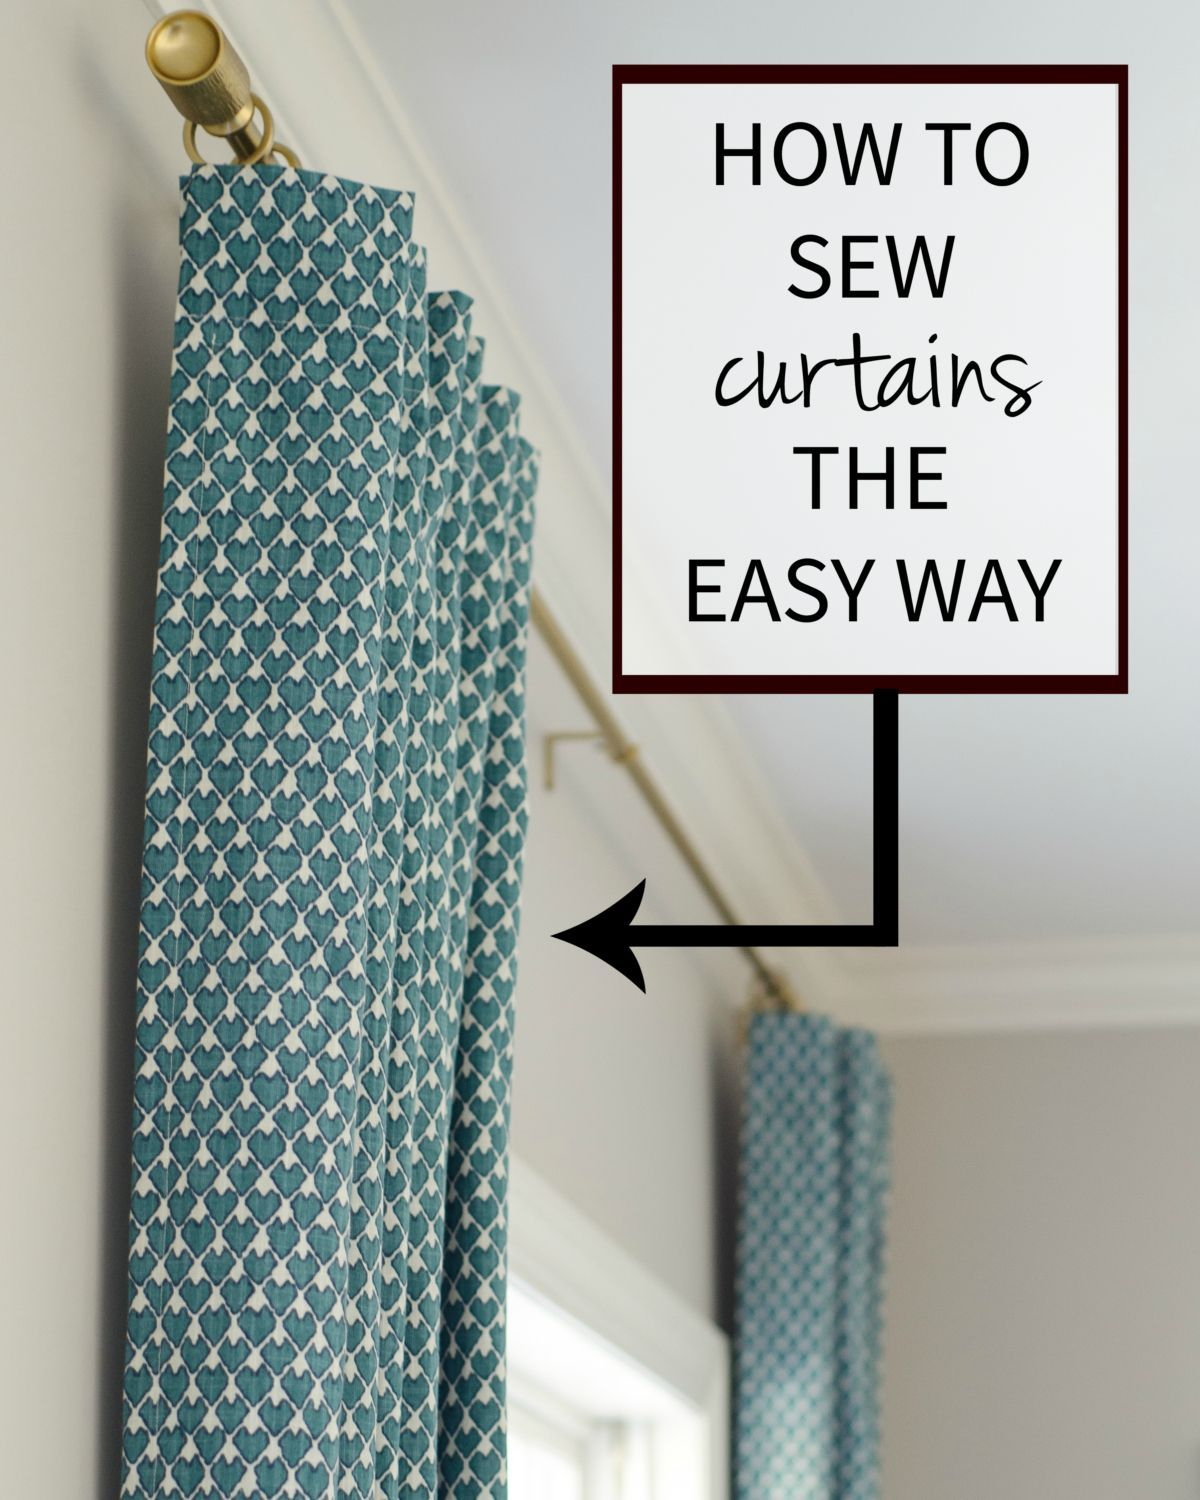 How To Sew Curtains The Easy Way